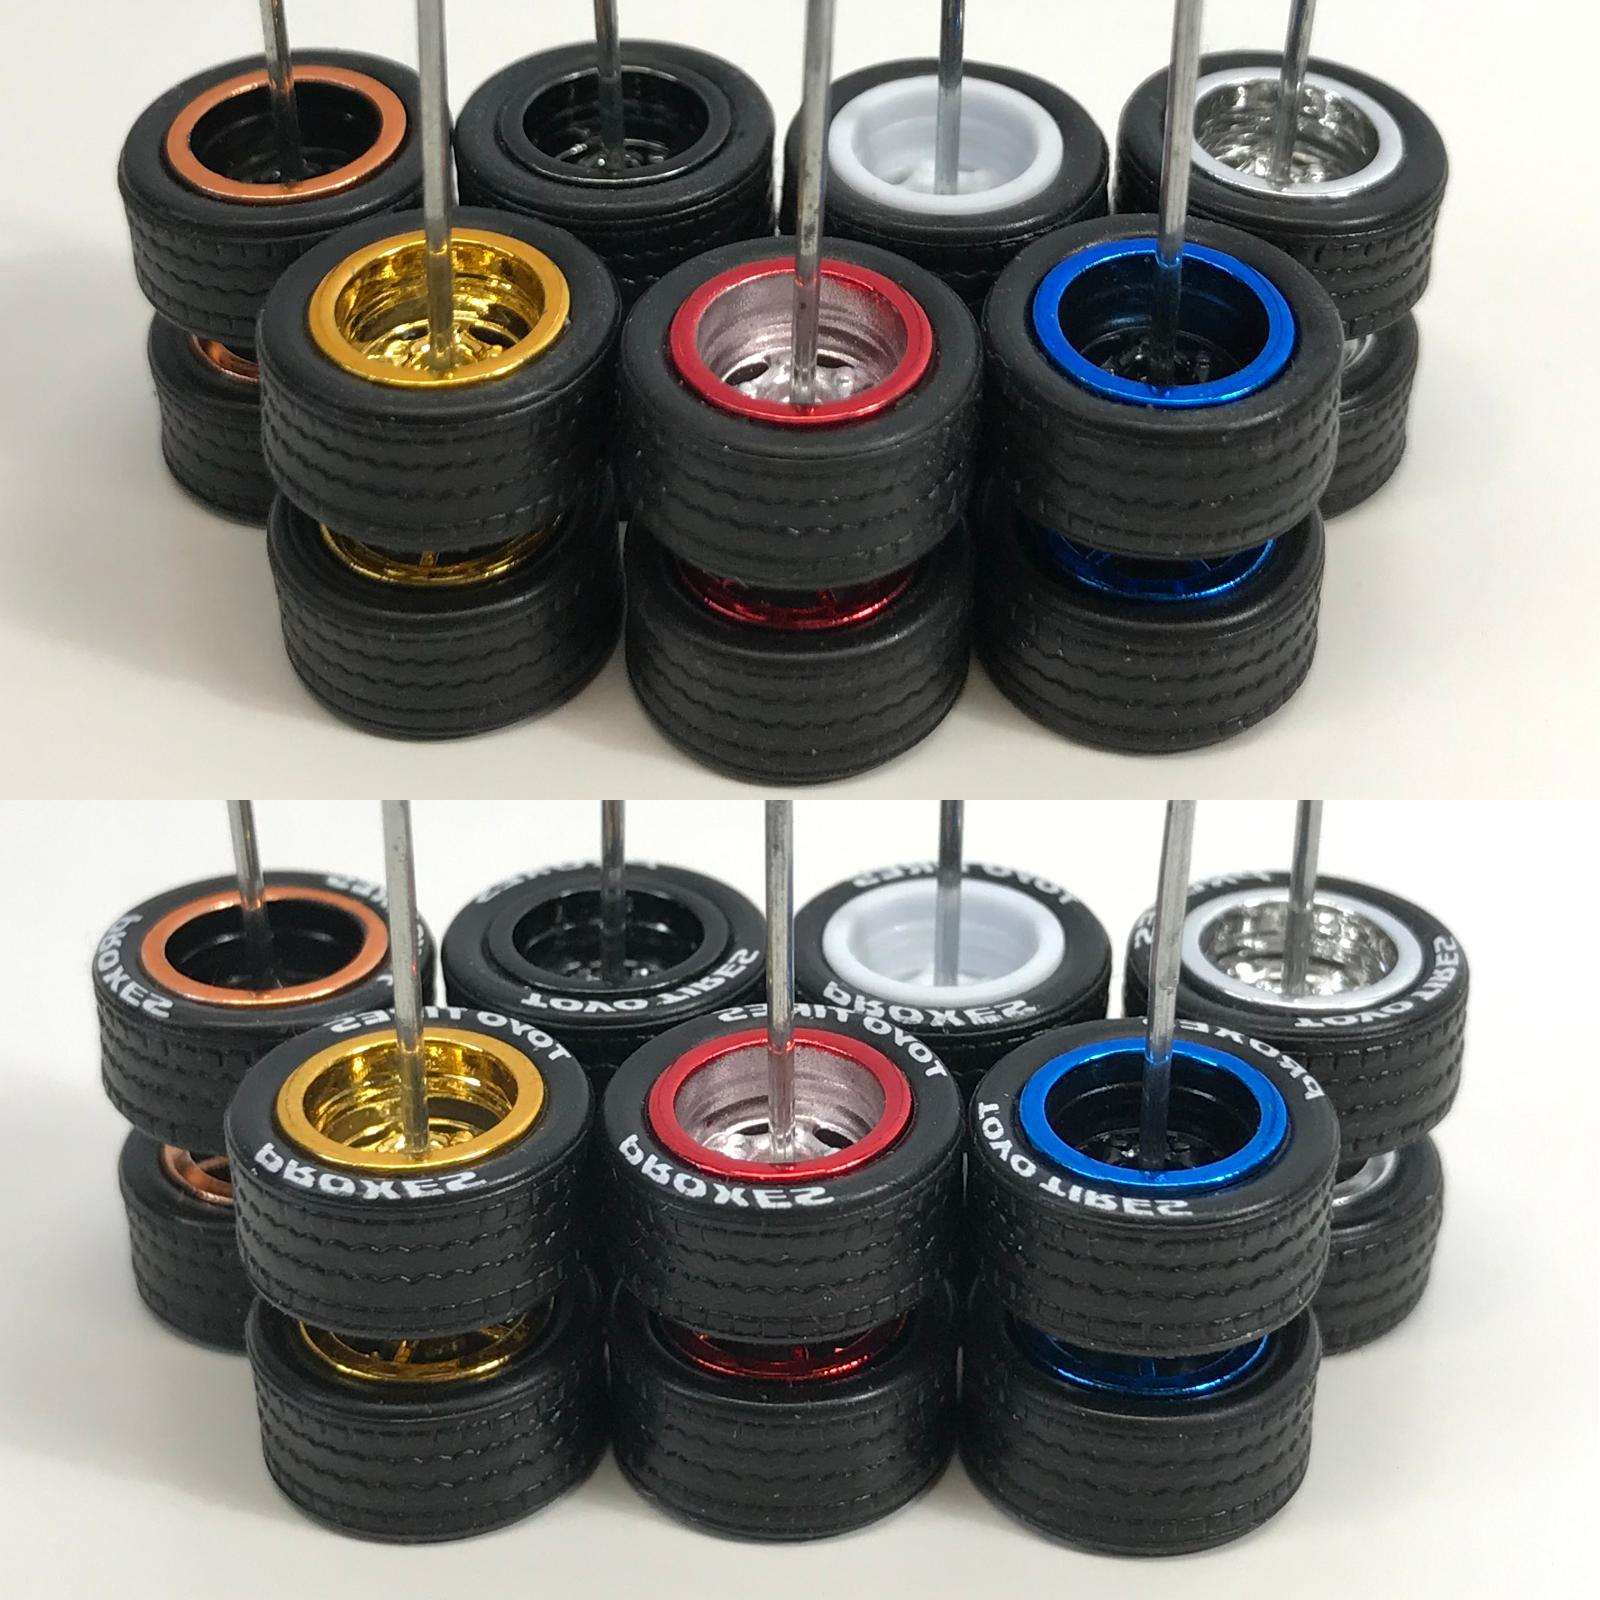 Hot Wheels Riders Wheels Tires Set for 1/64 Scale